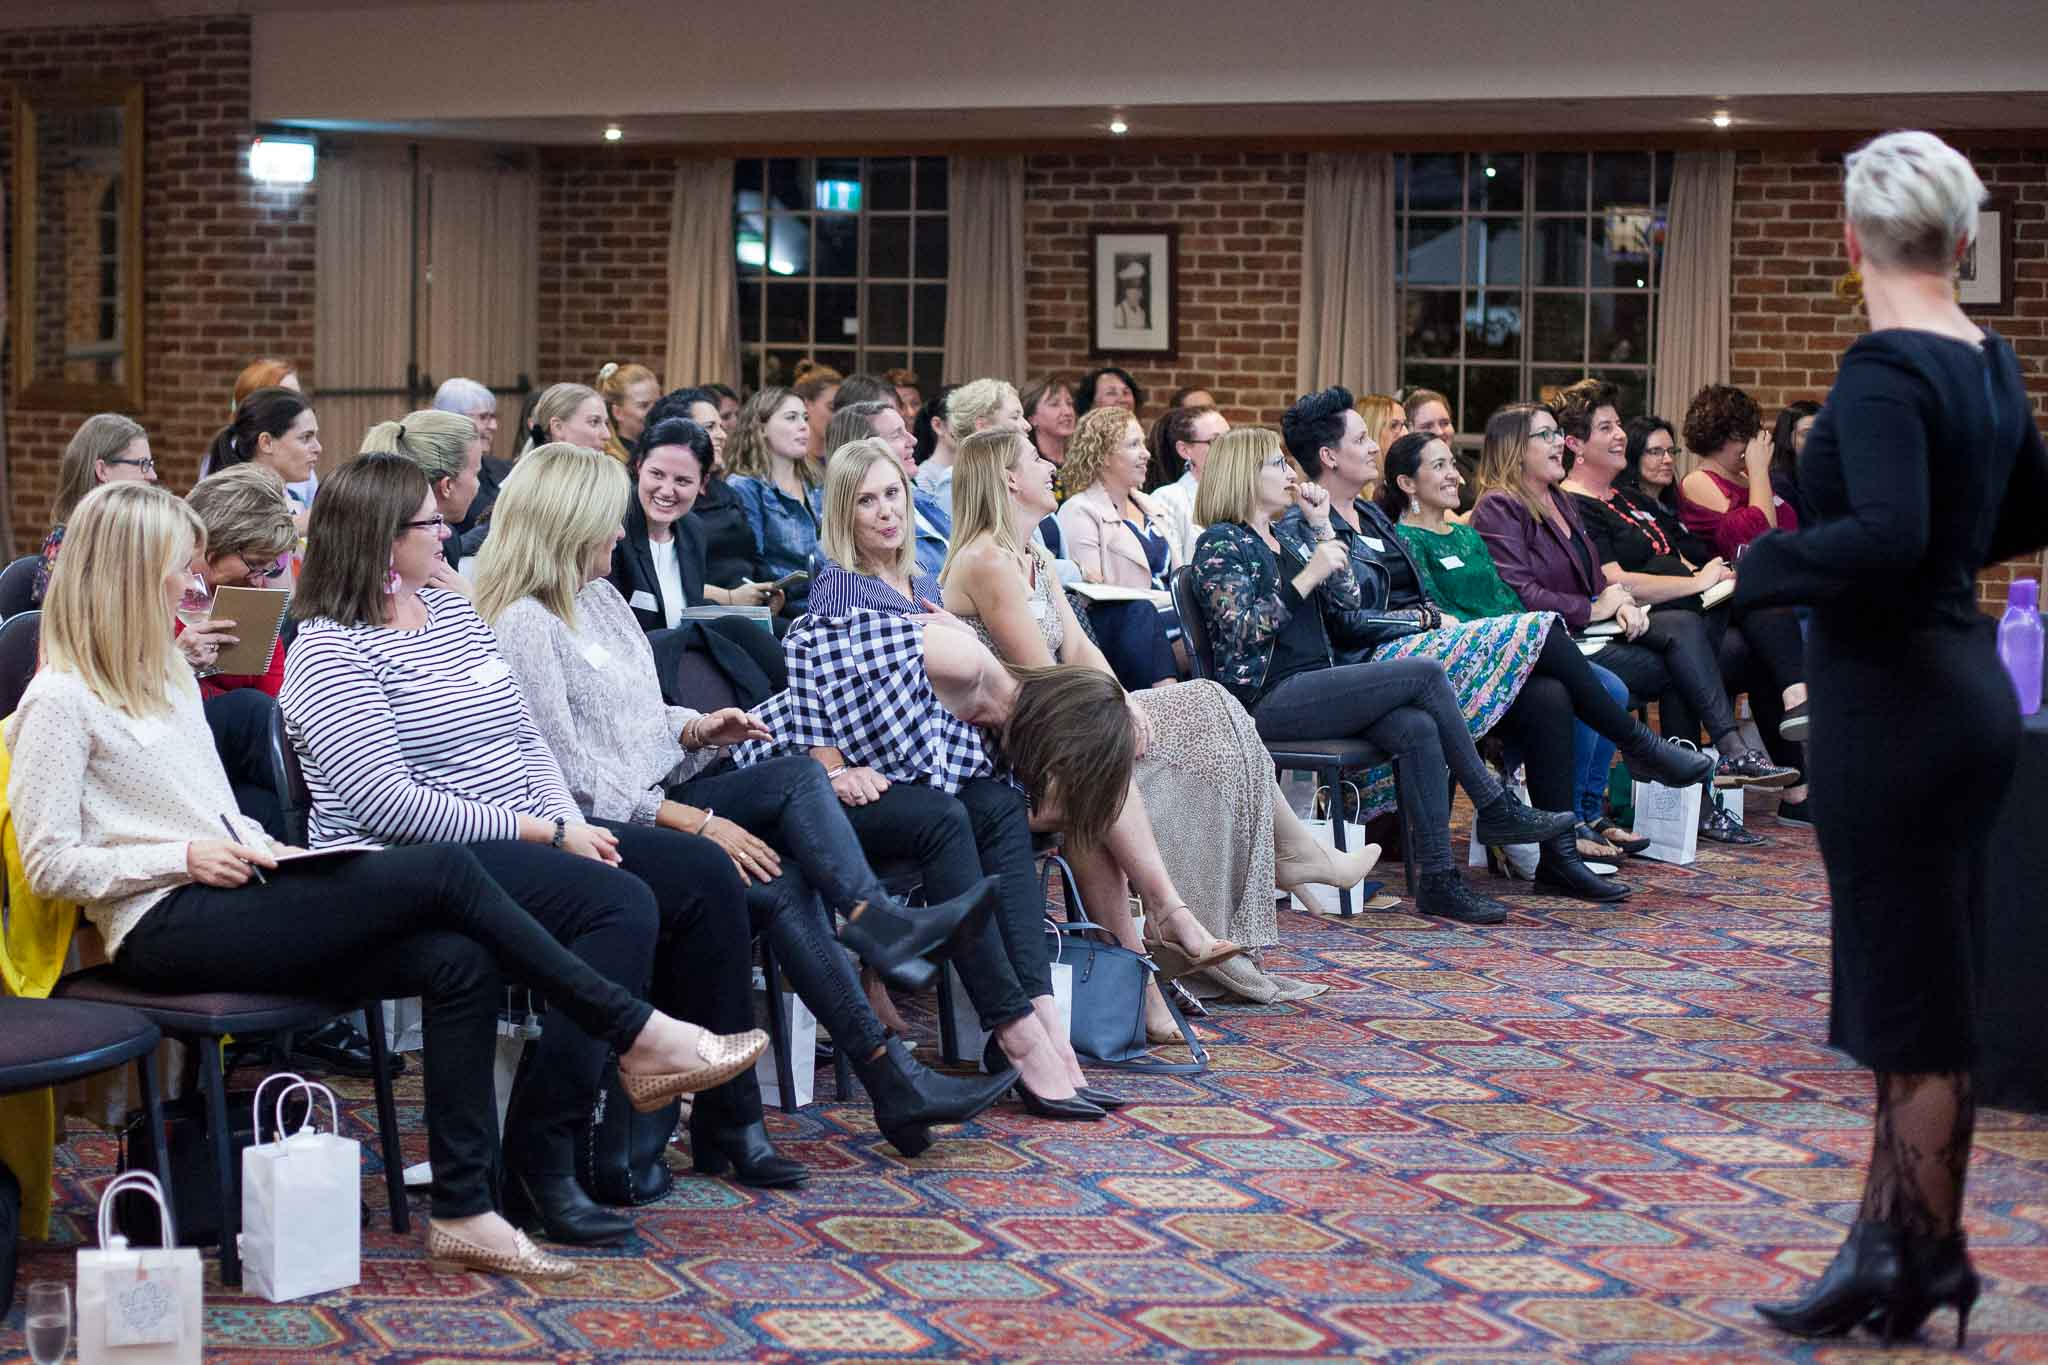 GWIB Workshop with Shekan - https://www.griffithwomeninbusiness.org/wp-content/uploads/2019/05/Griffith-Women-in-Business-GWIB-Workshop-SheKan-WEB-7195.jpg